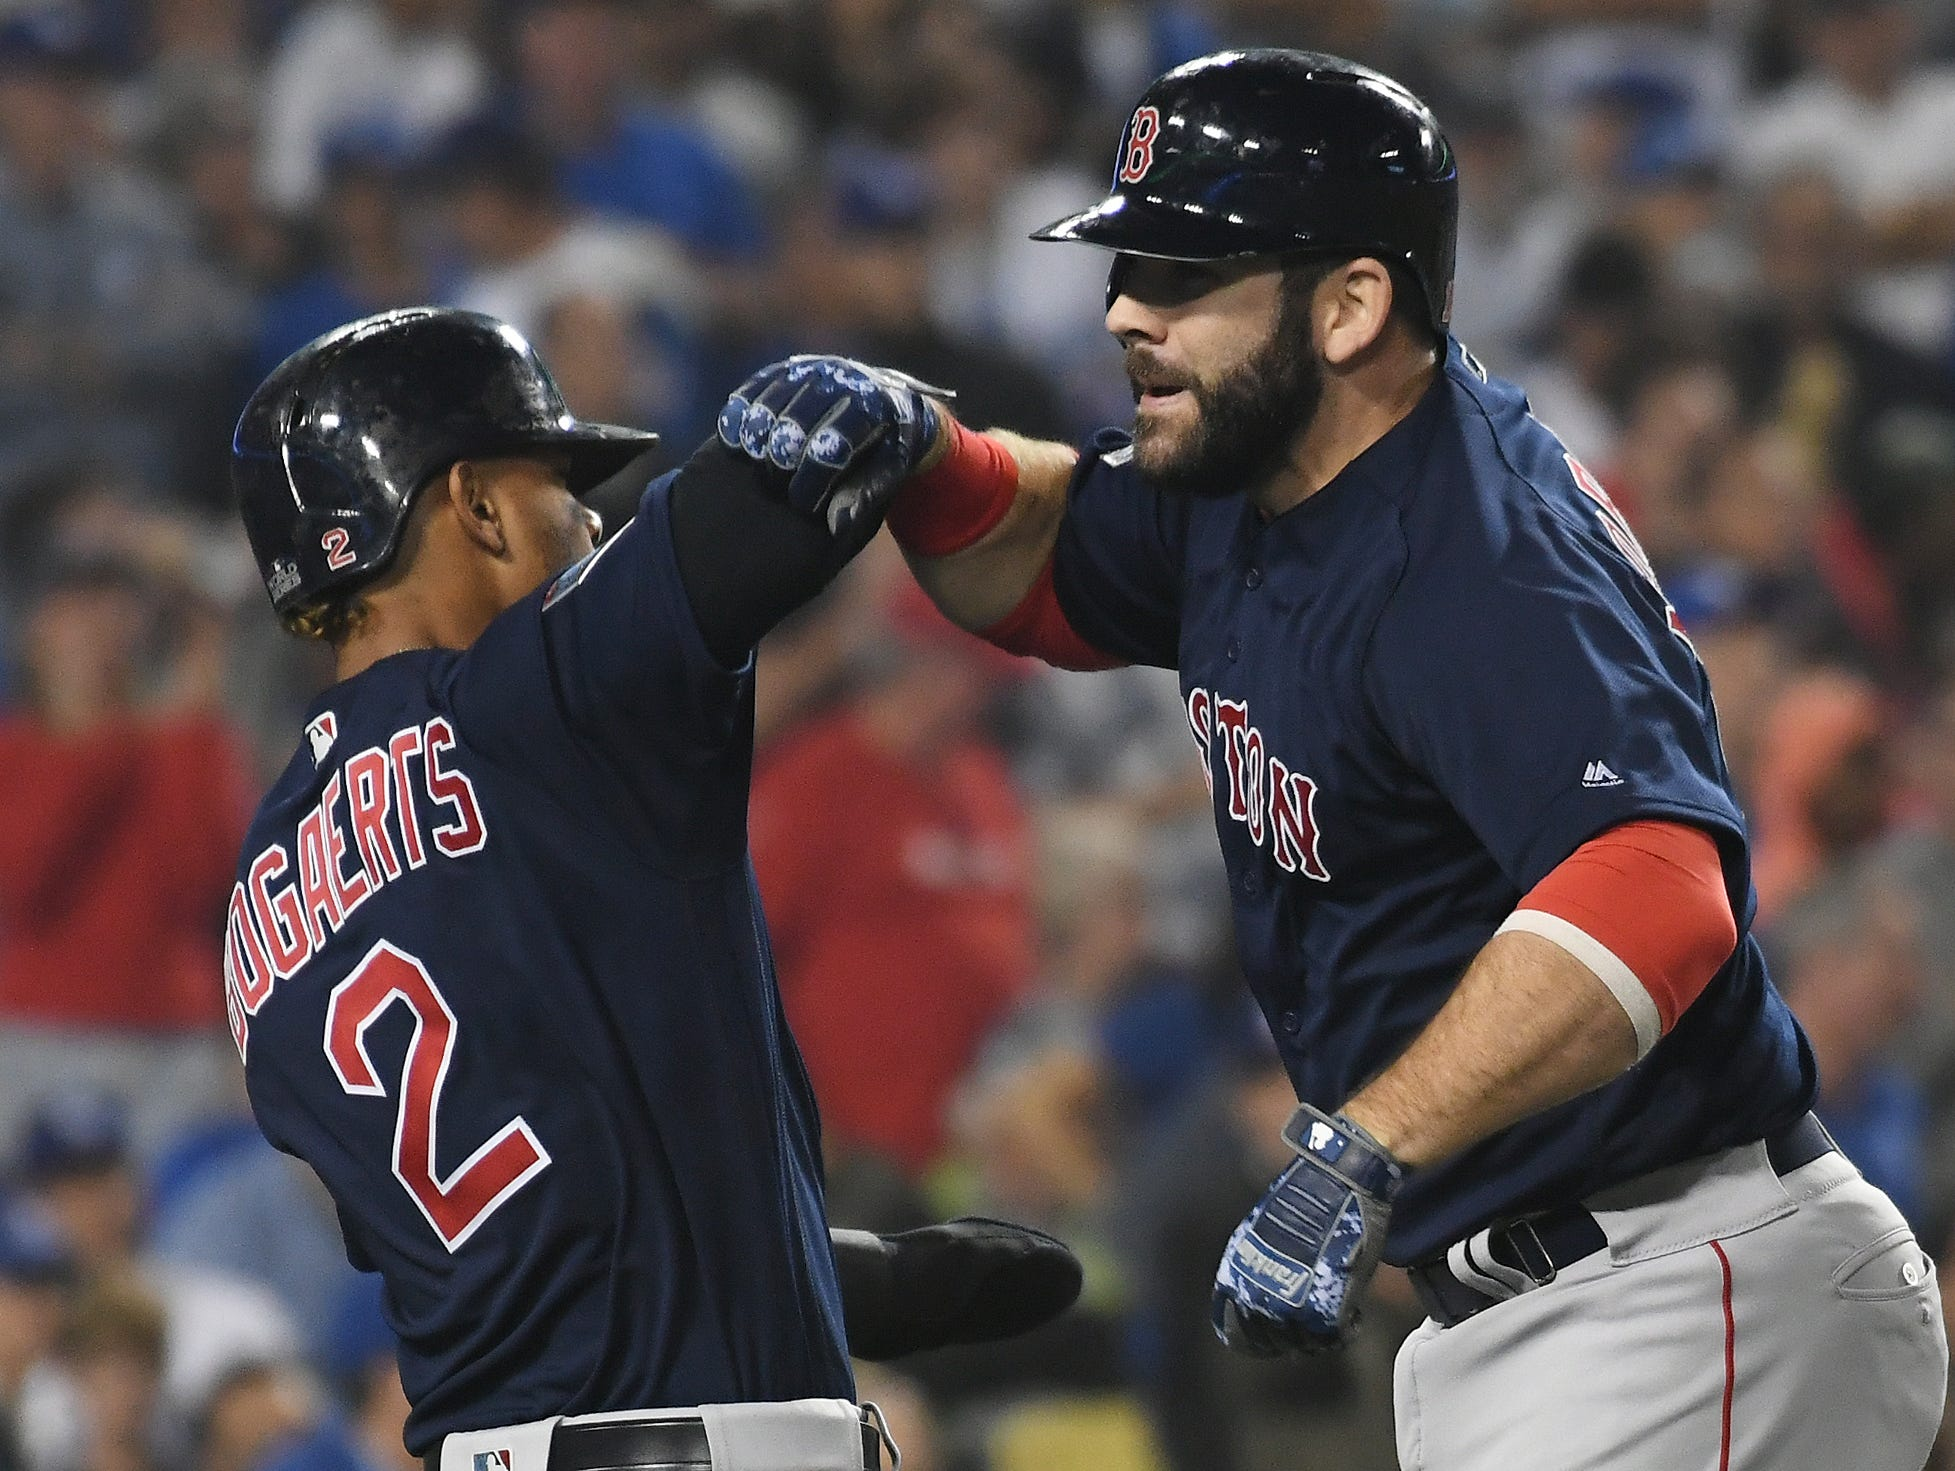 Mitch Moreland celebrates his three-run homer in the seventh with Xander Bogaerts.